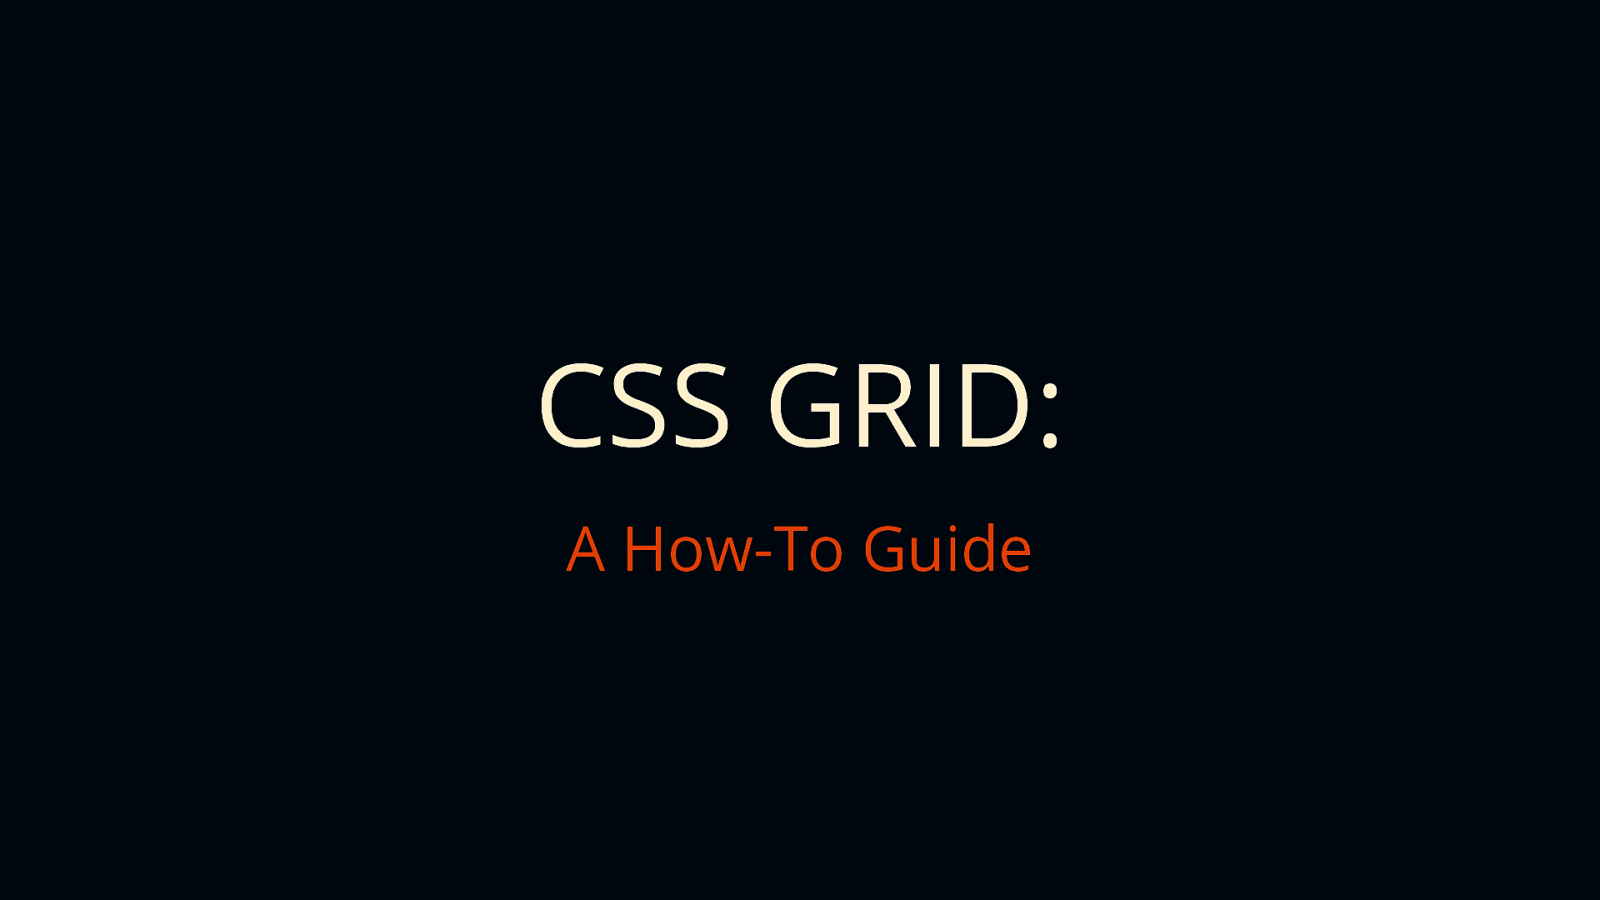 CSS Grid: A How-To Guide